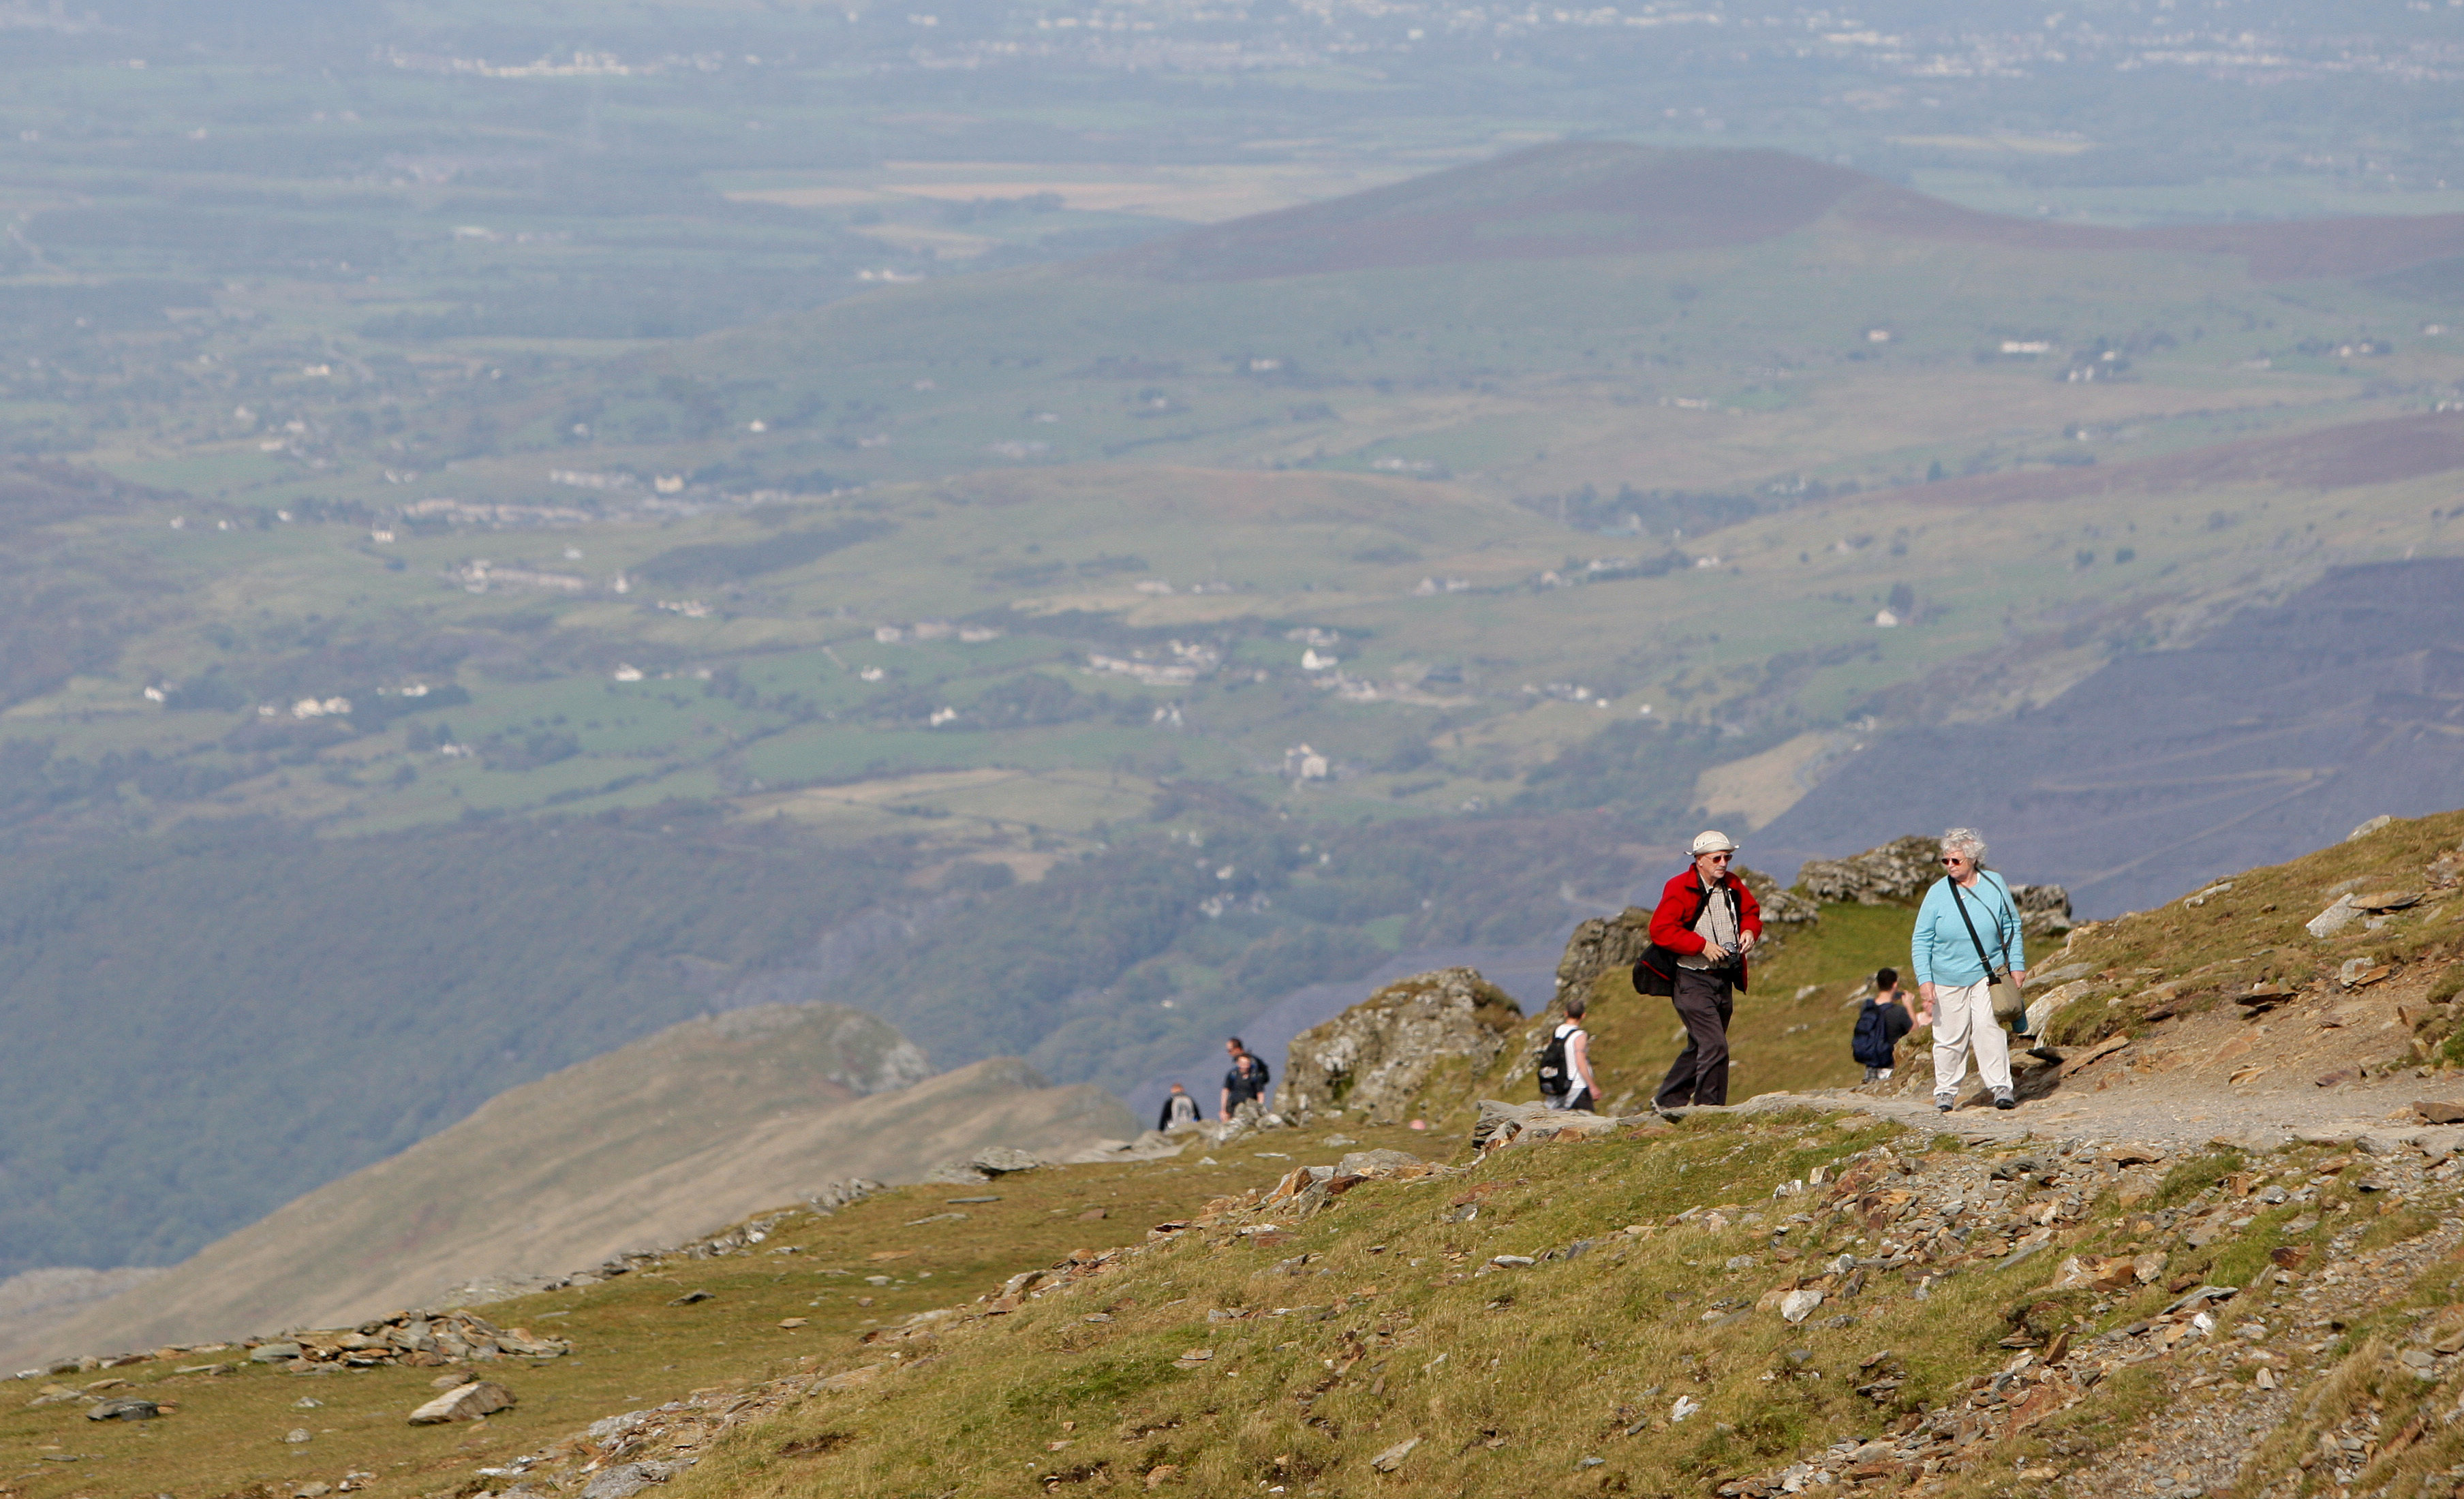 People Say Snowdon Is 'Too Steep And Windy' In Bizarre Trip Advisor Reviews